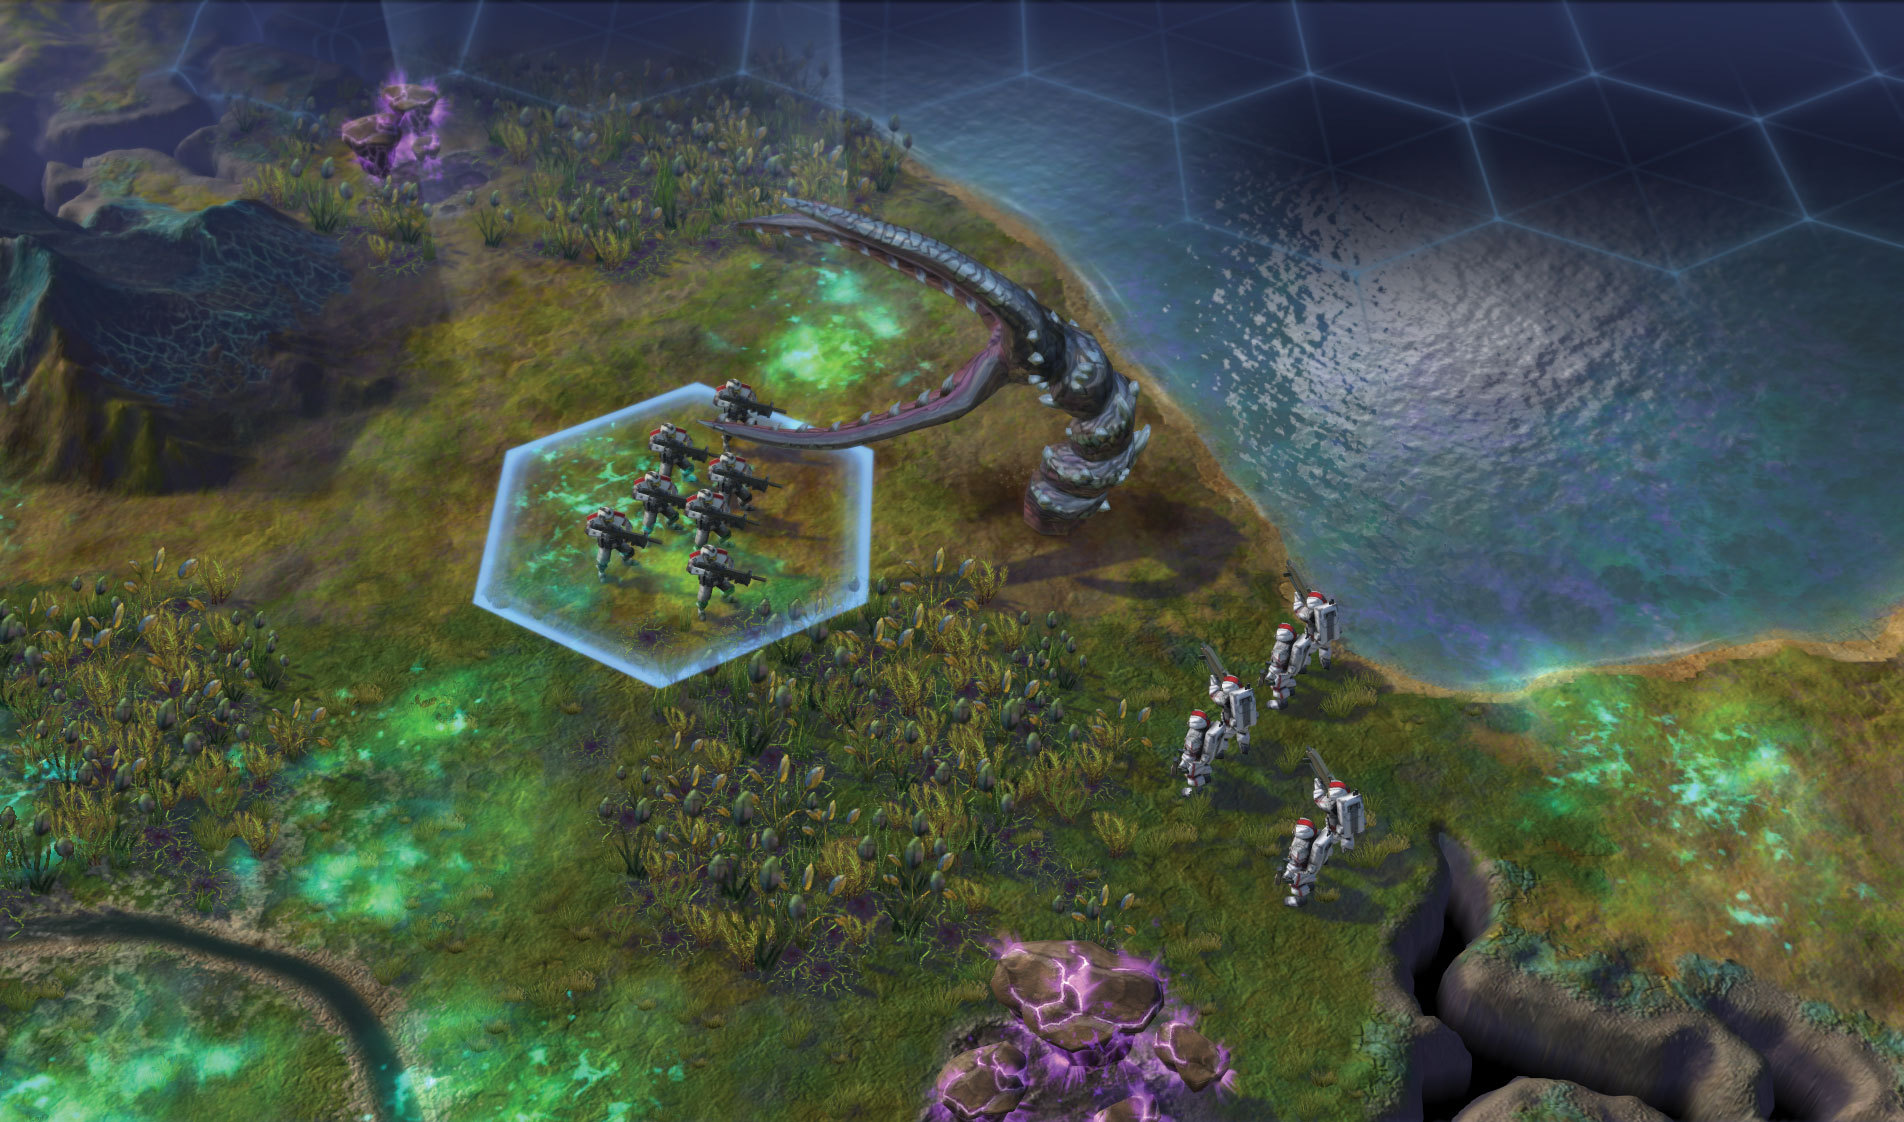 The Siege Worm, one of the new alien creatures found in Sid Meier's Civilization: Beyond Earth (Photo: Business Wire)